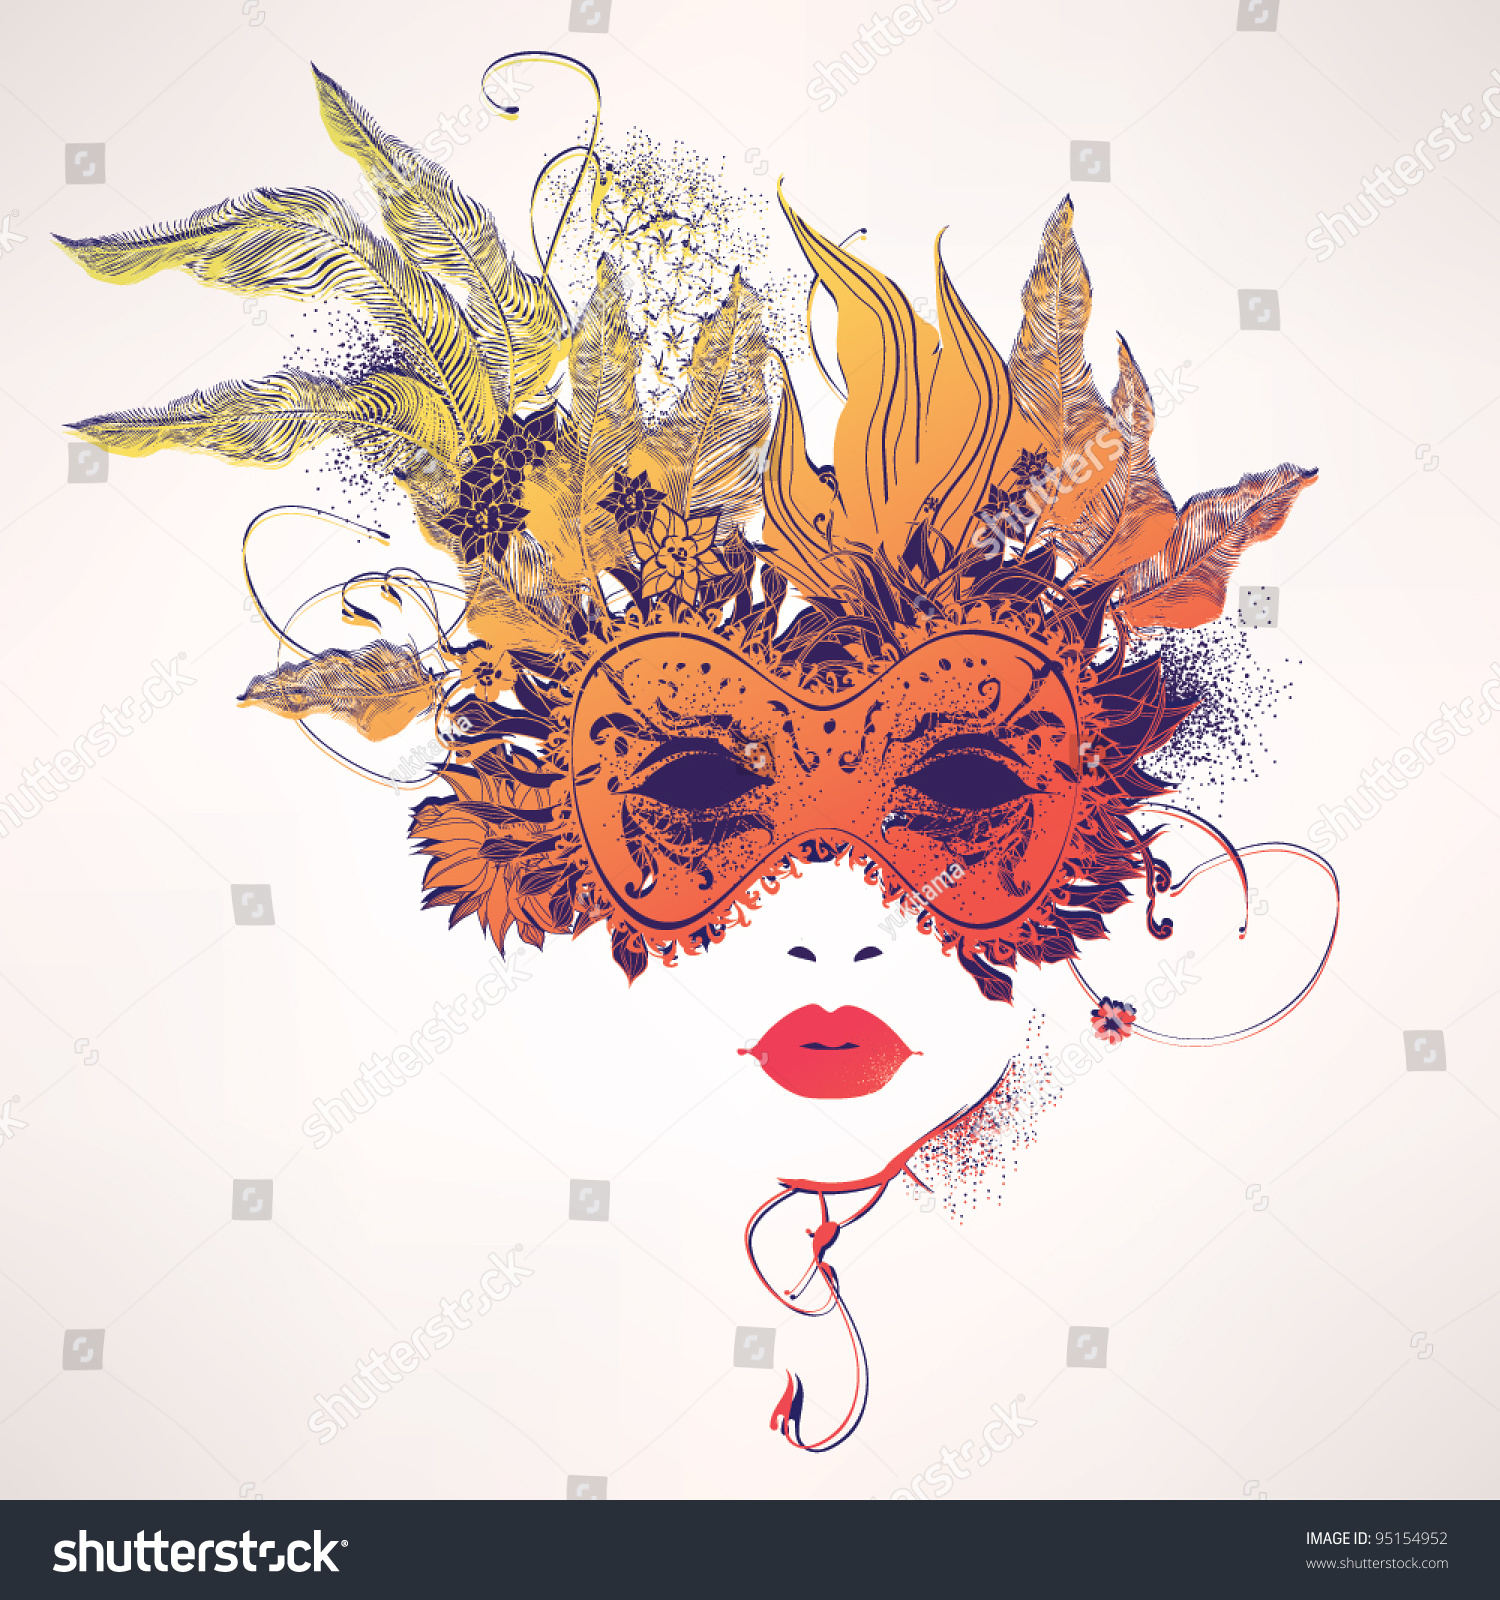 Abstract Woman Face Flowers Fashion Illustration Stock